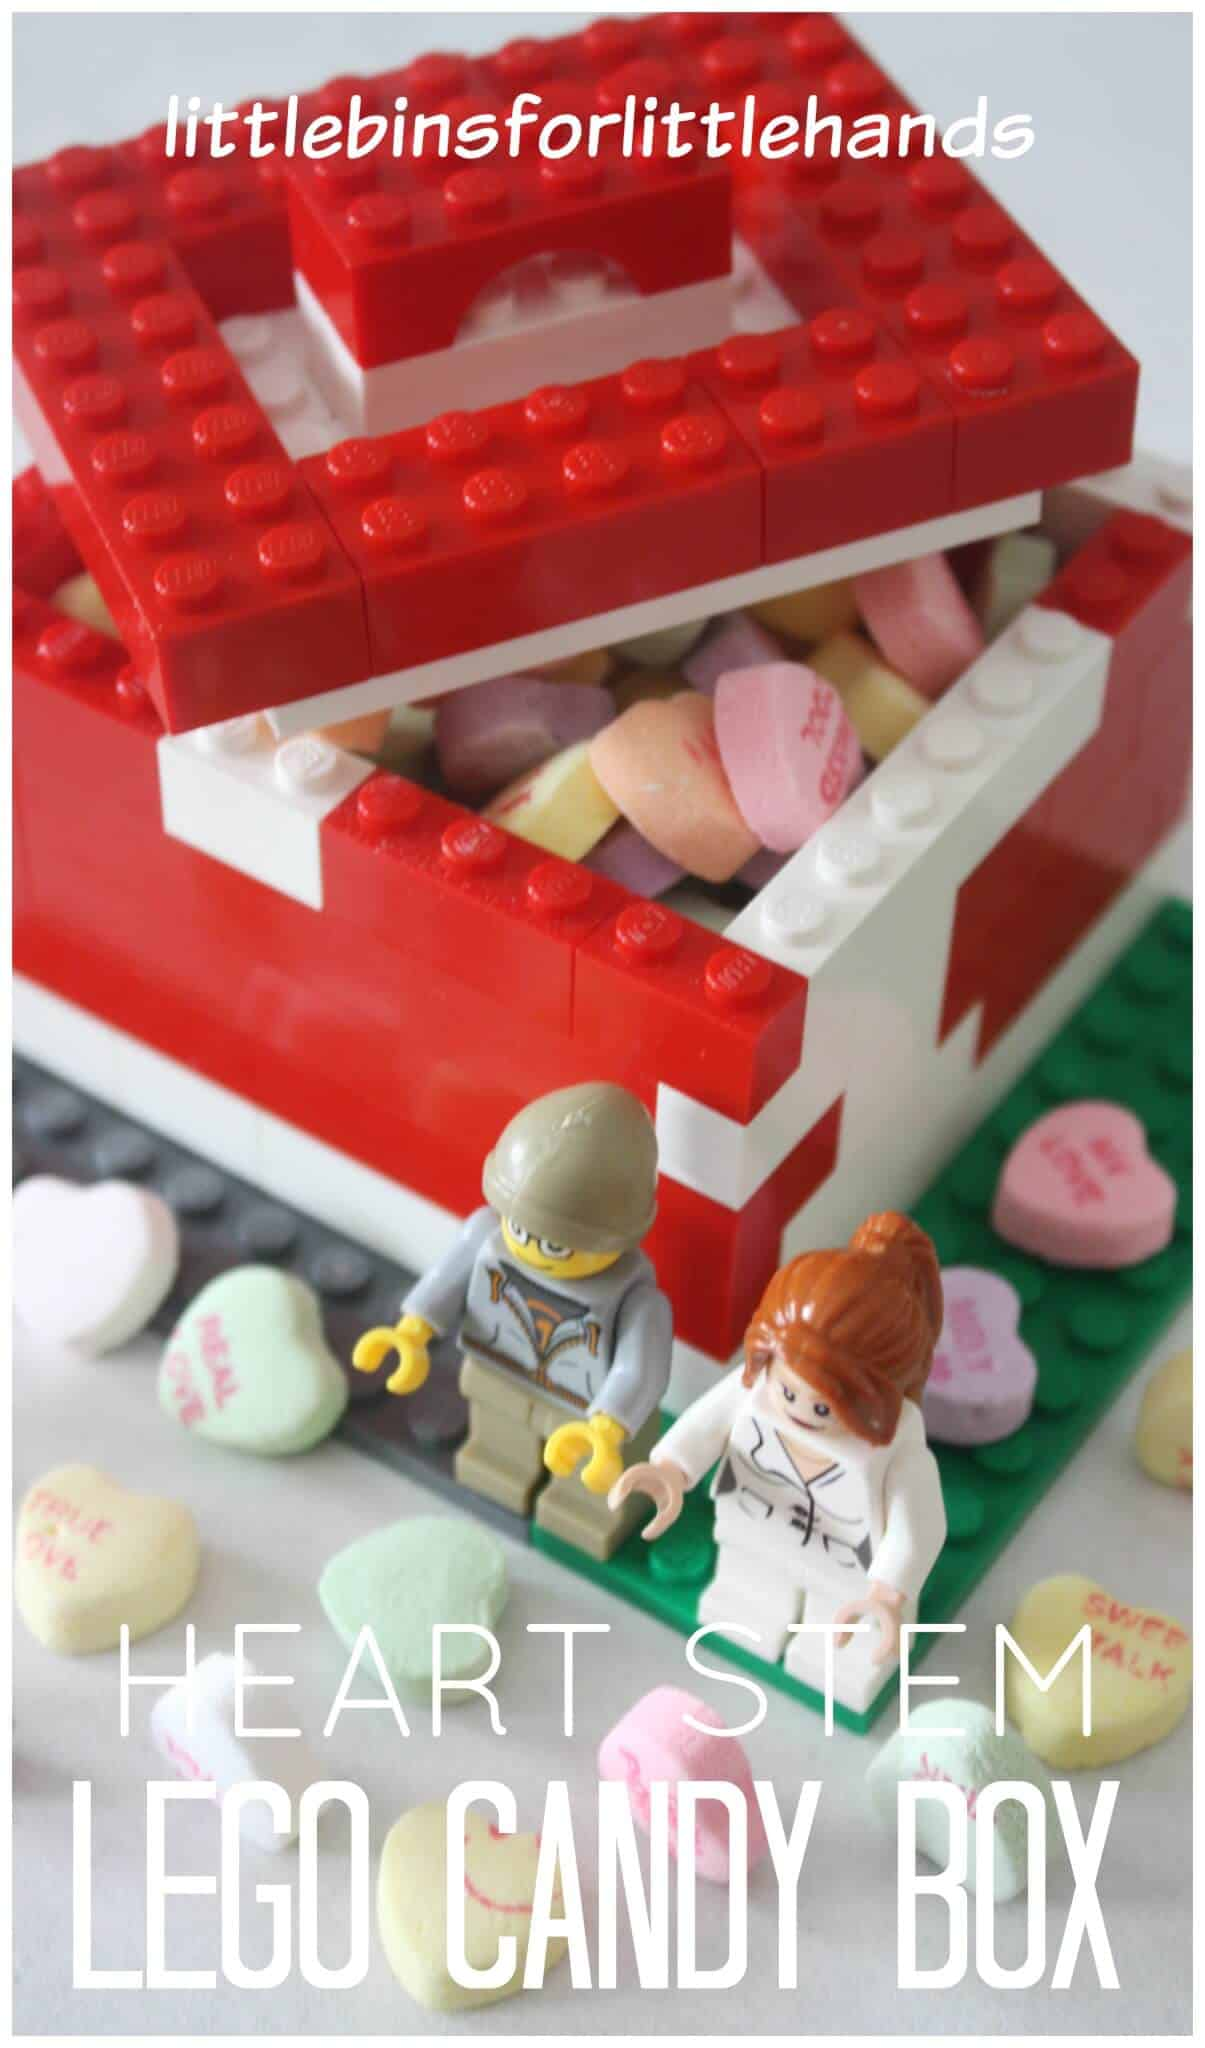 Lego Candy Box for Candy Hearts Activity STEM